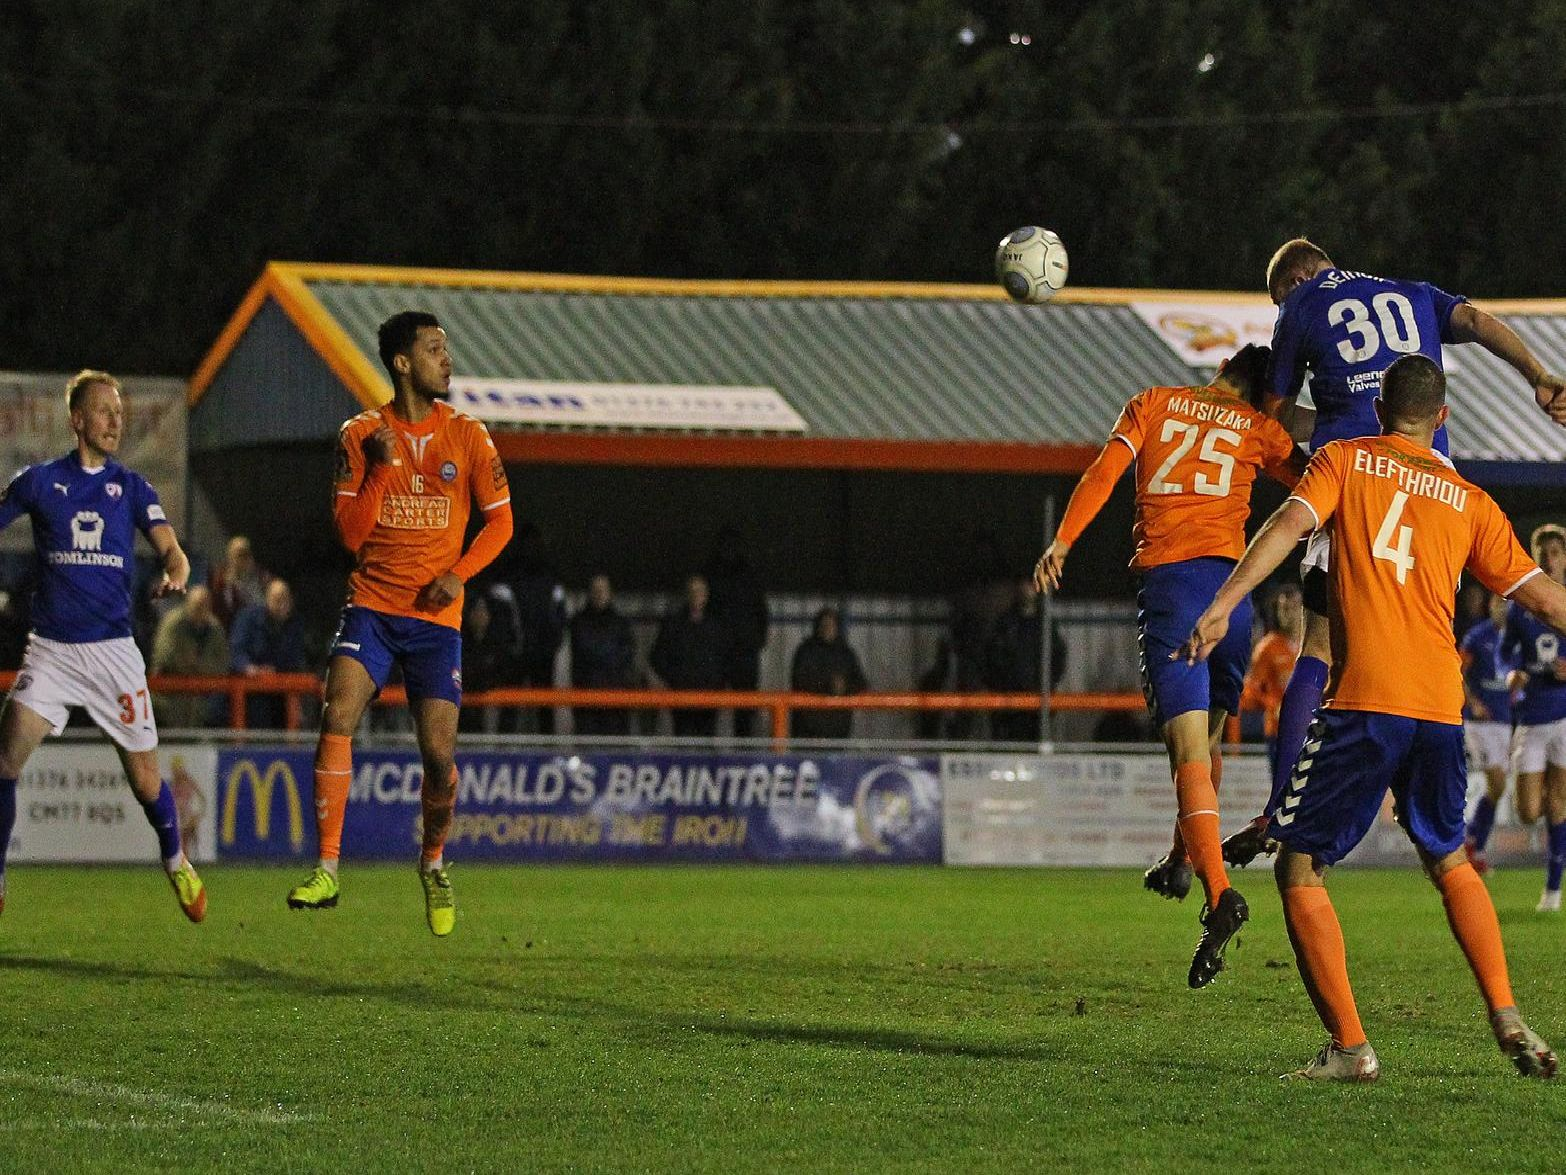 Tom Denton gets up to win a header, leading to Scott Boden's first goal